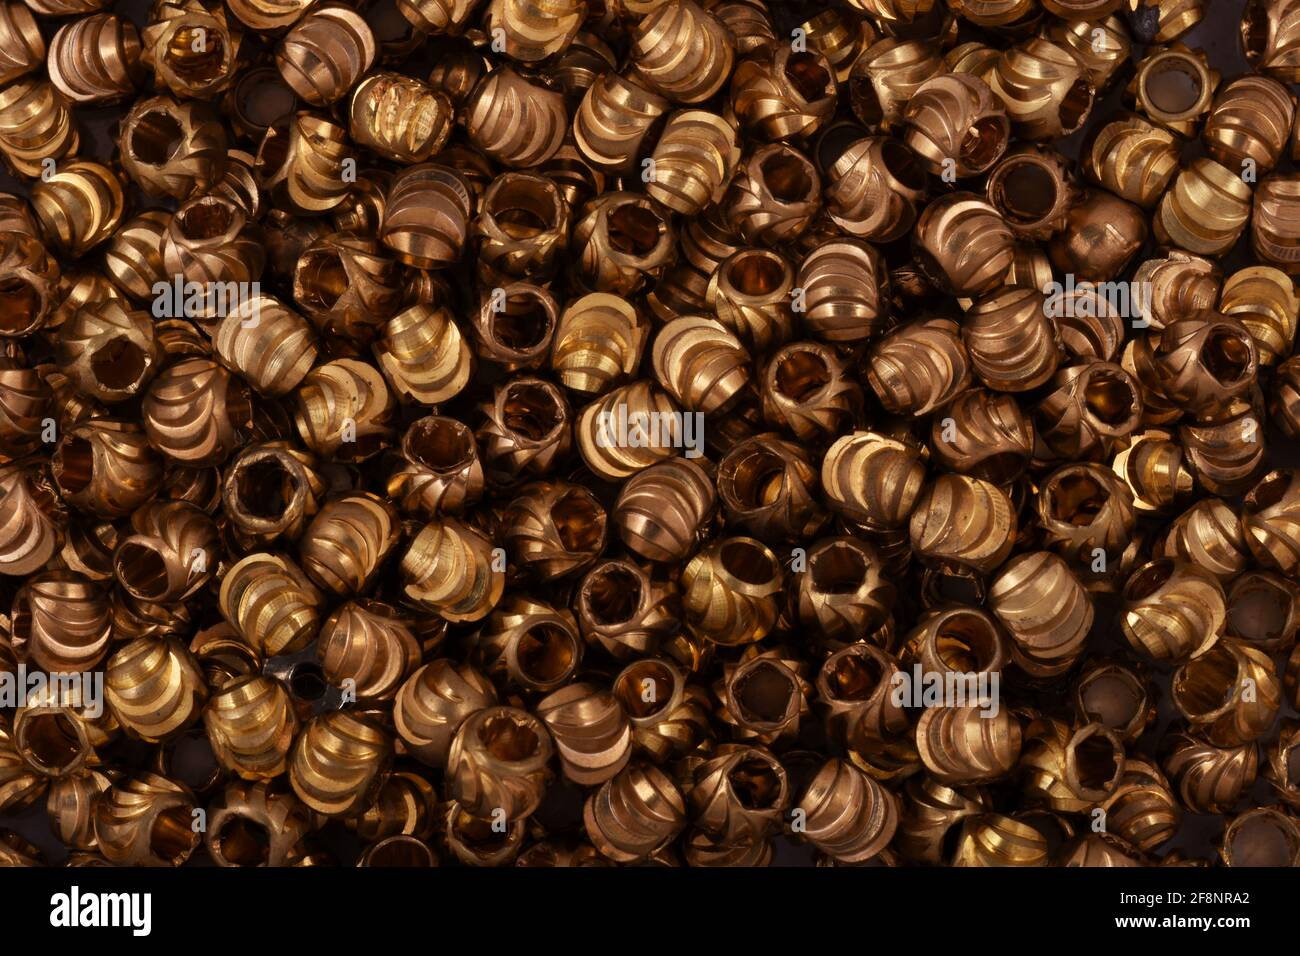 Golden beads close up background Stock Photo